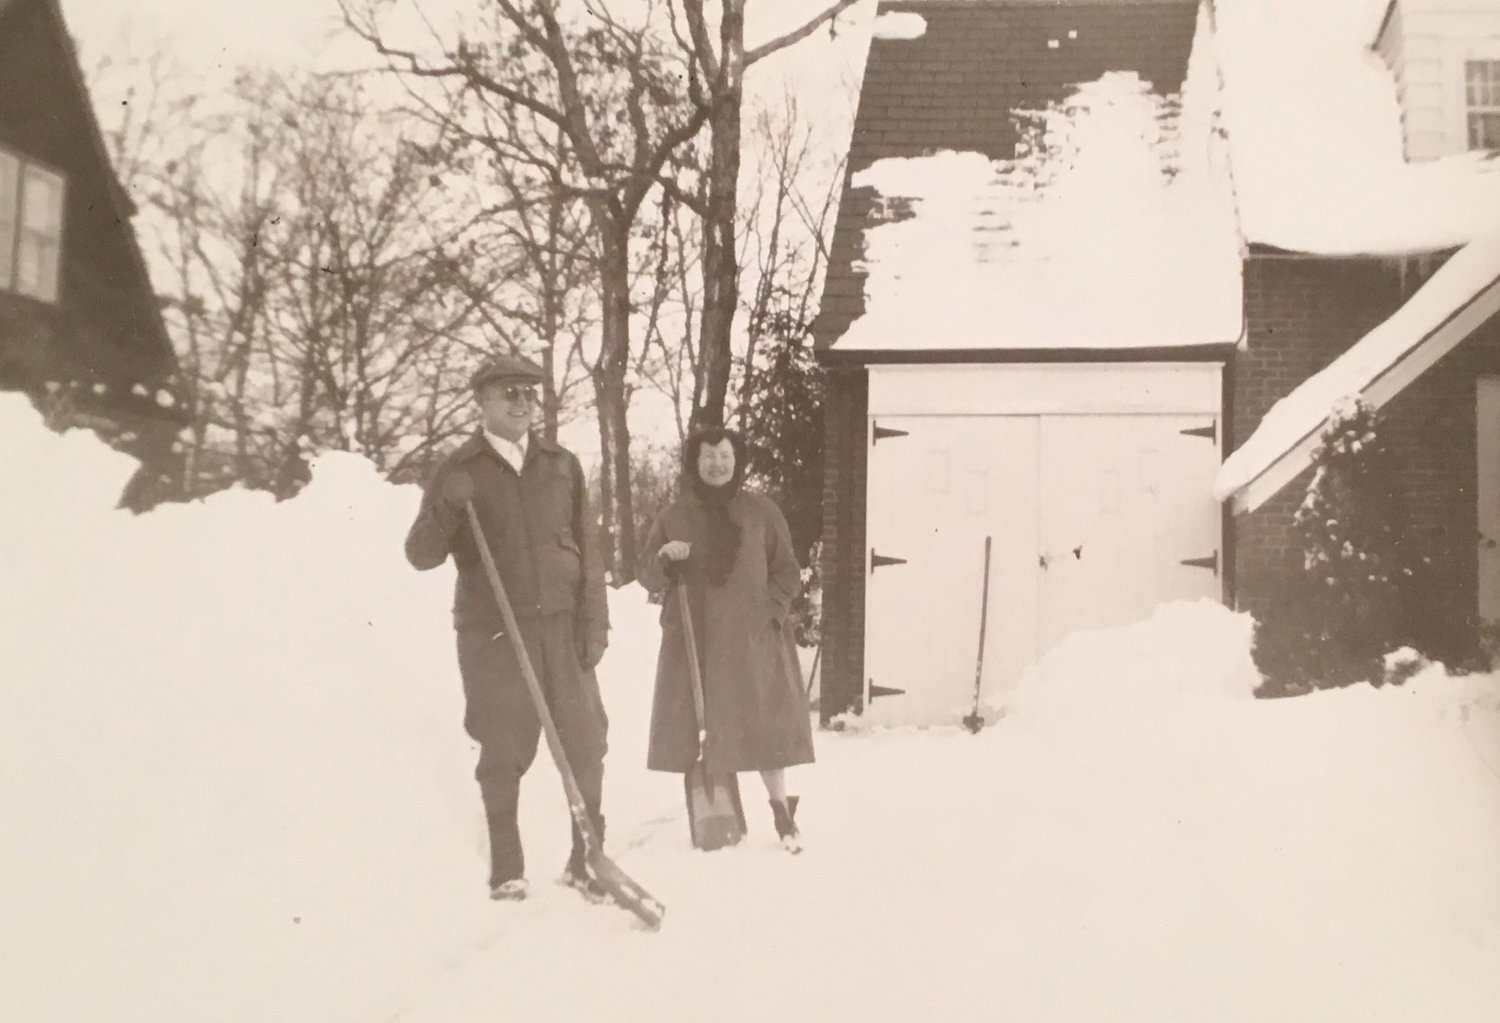 A West Hempstead couple shoveling snow by their garage after a blizzard in 1938.